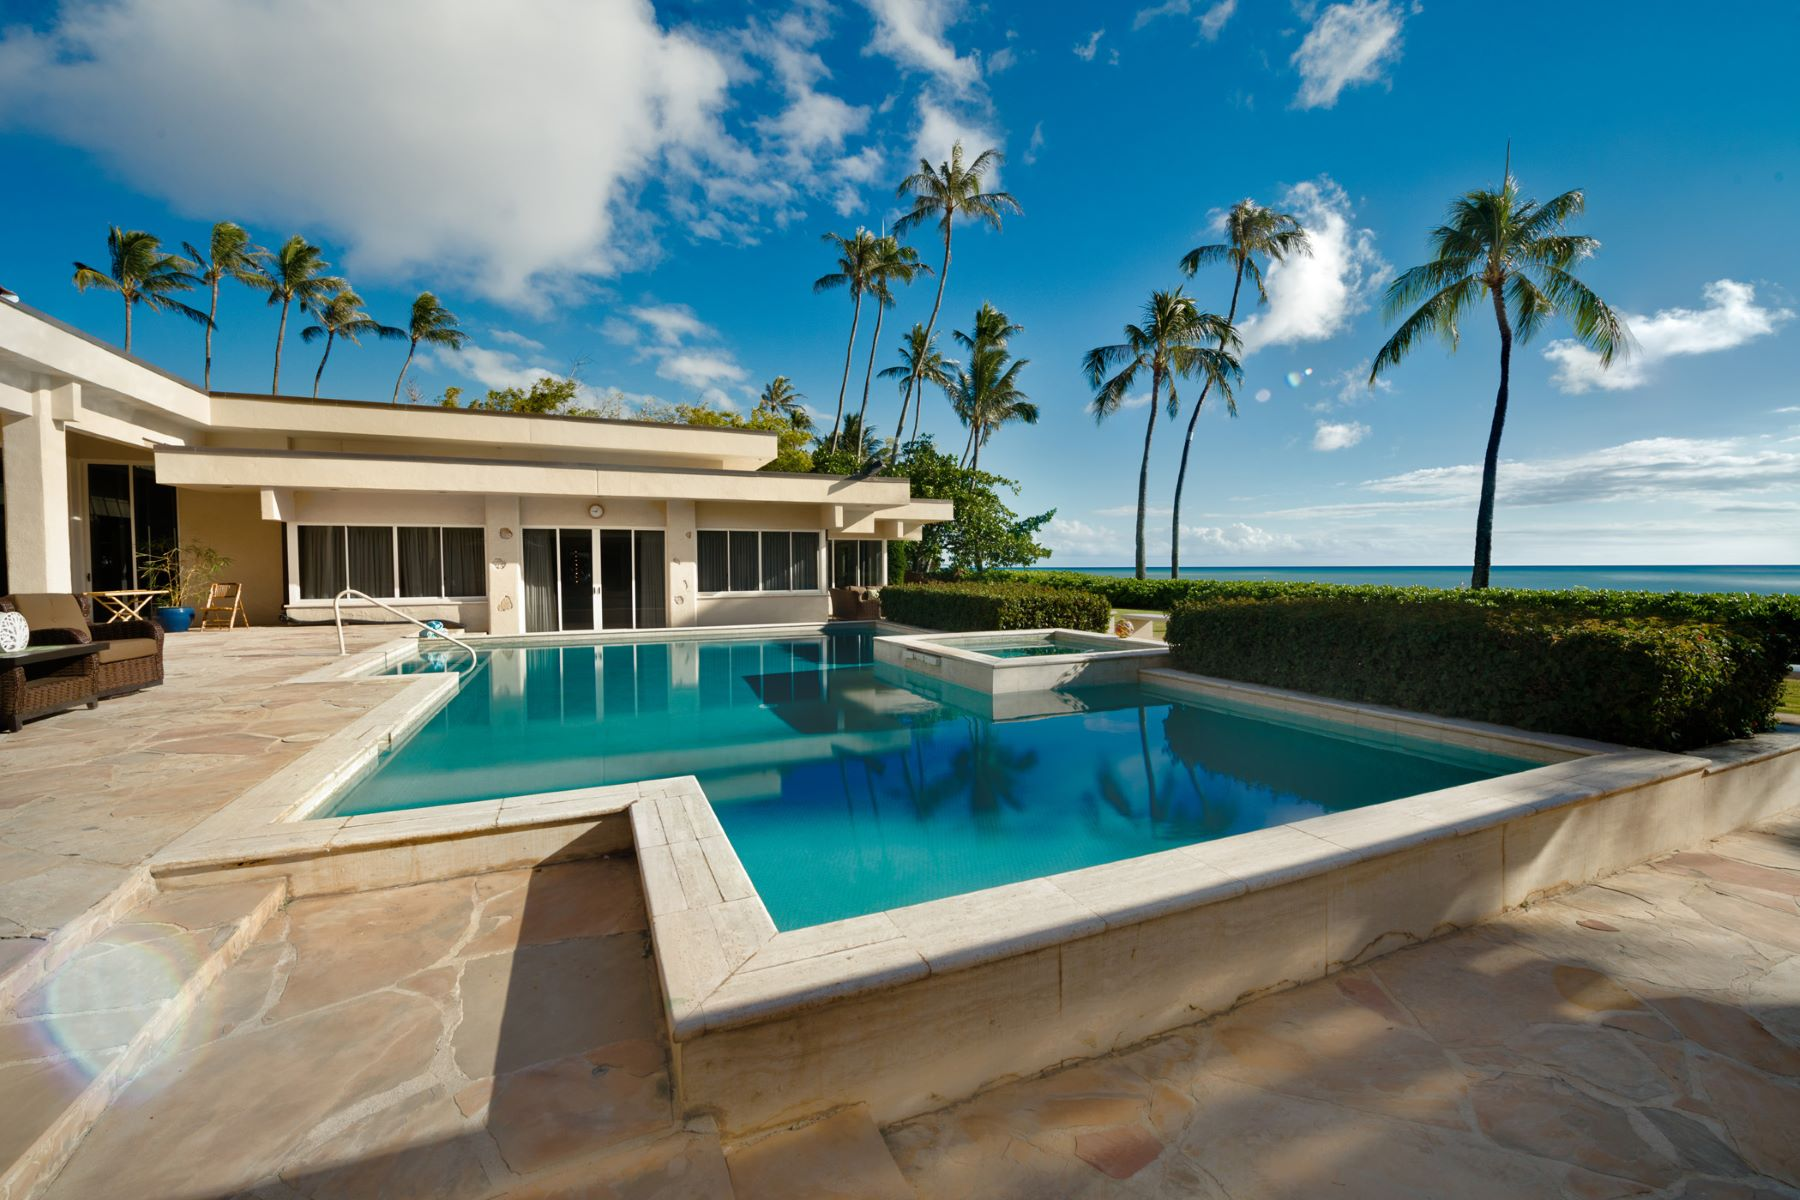 Additional photo for property listing at Palatial Portlock Estate 387 Portlock Rd Honolulu, Hawaii 96825 United States